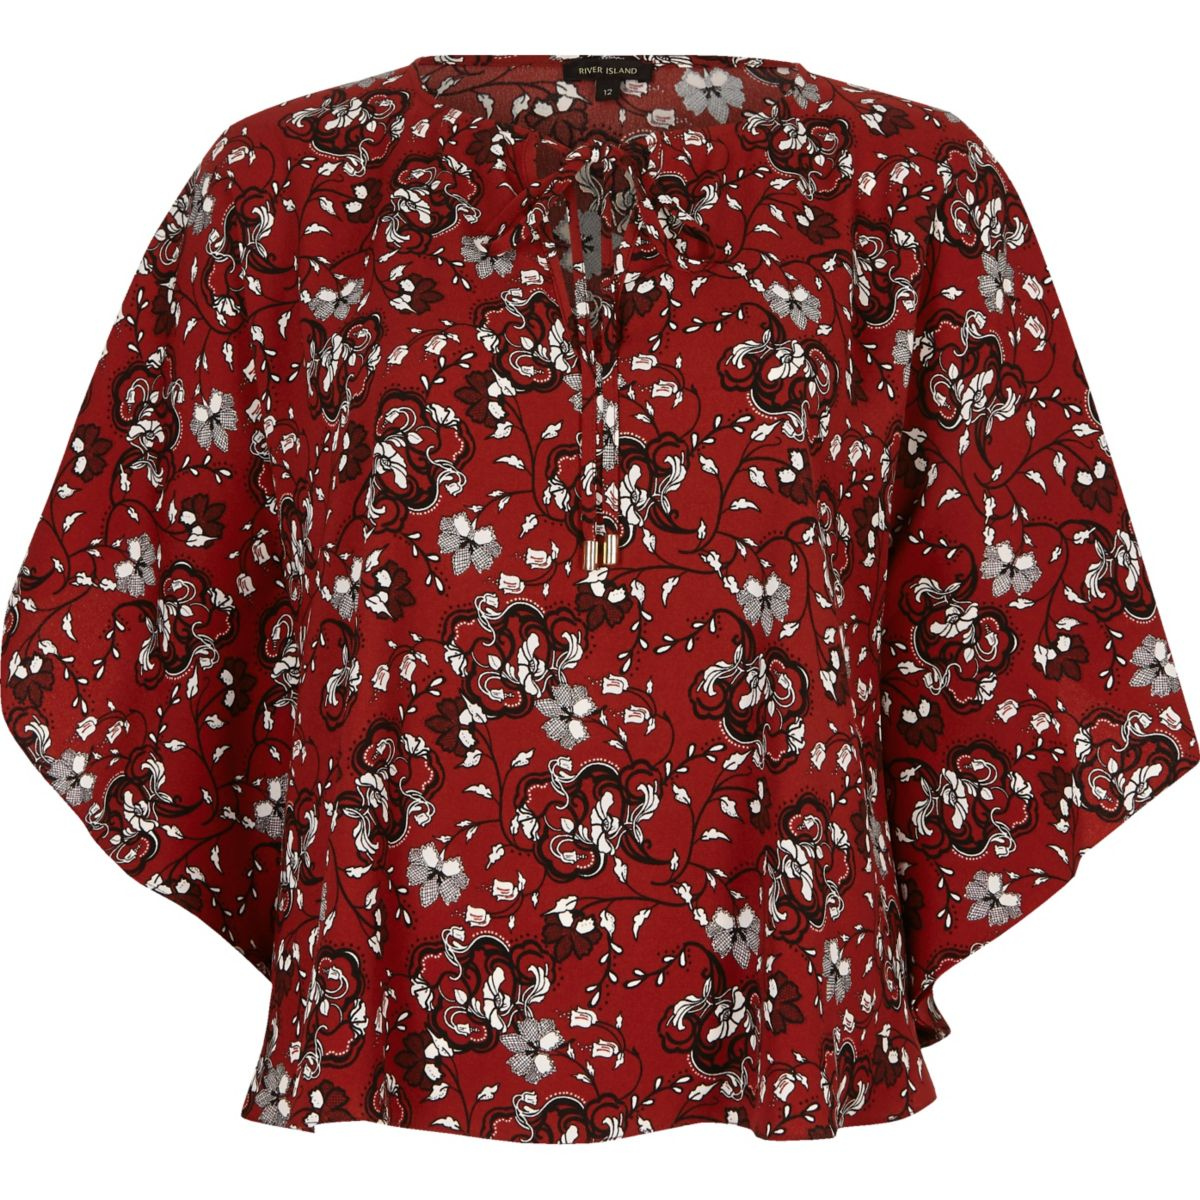 Red floral print poncho top